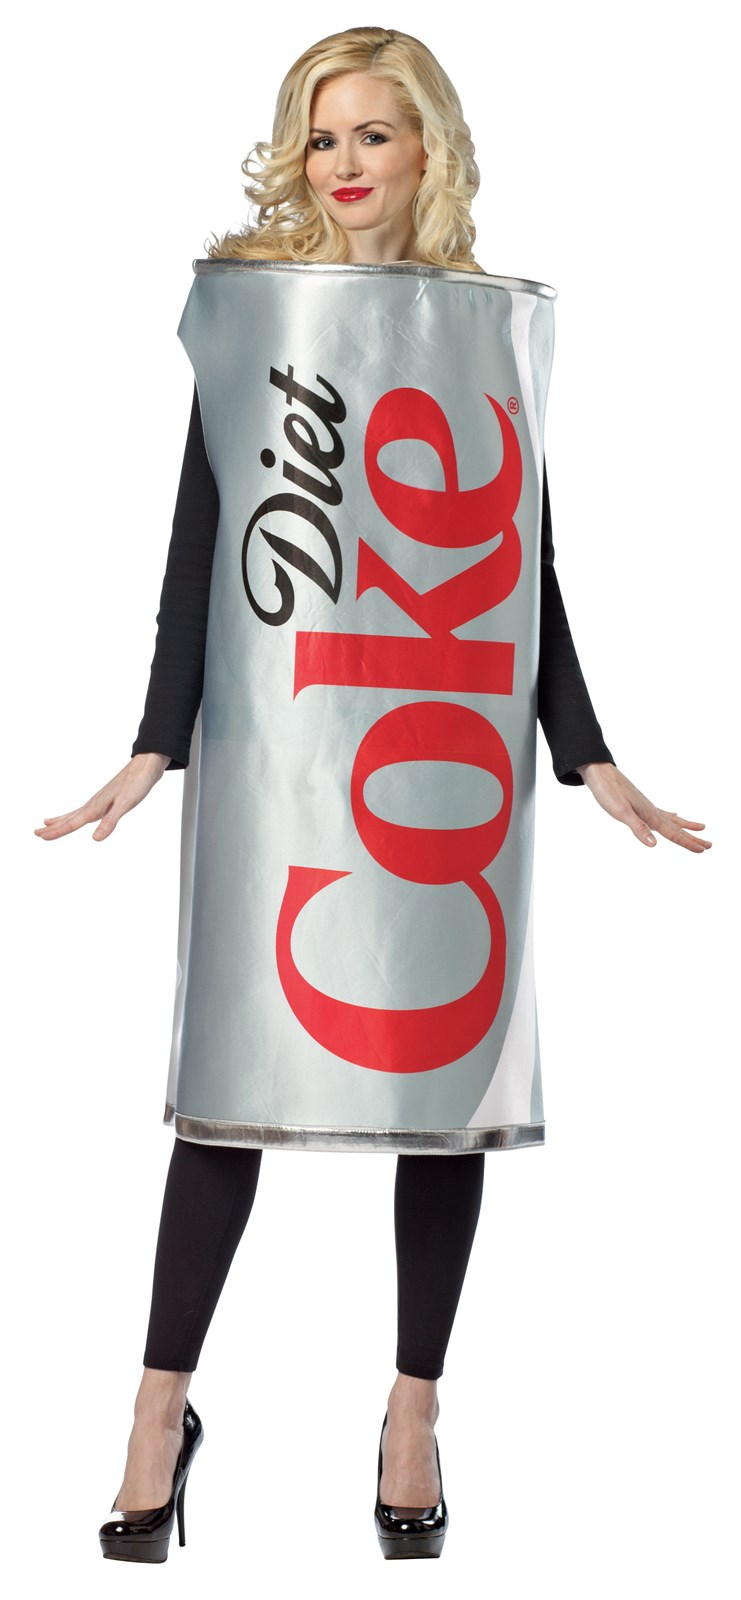 Coca-Cola - Diet Coke Can Adult Costume